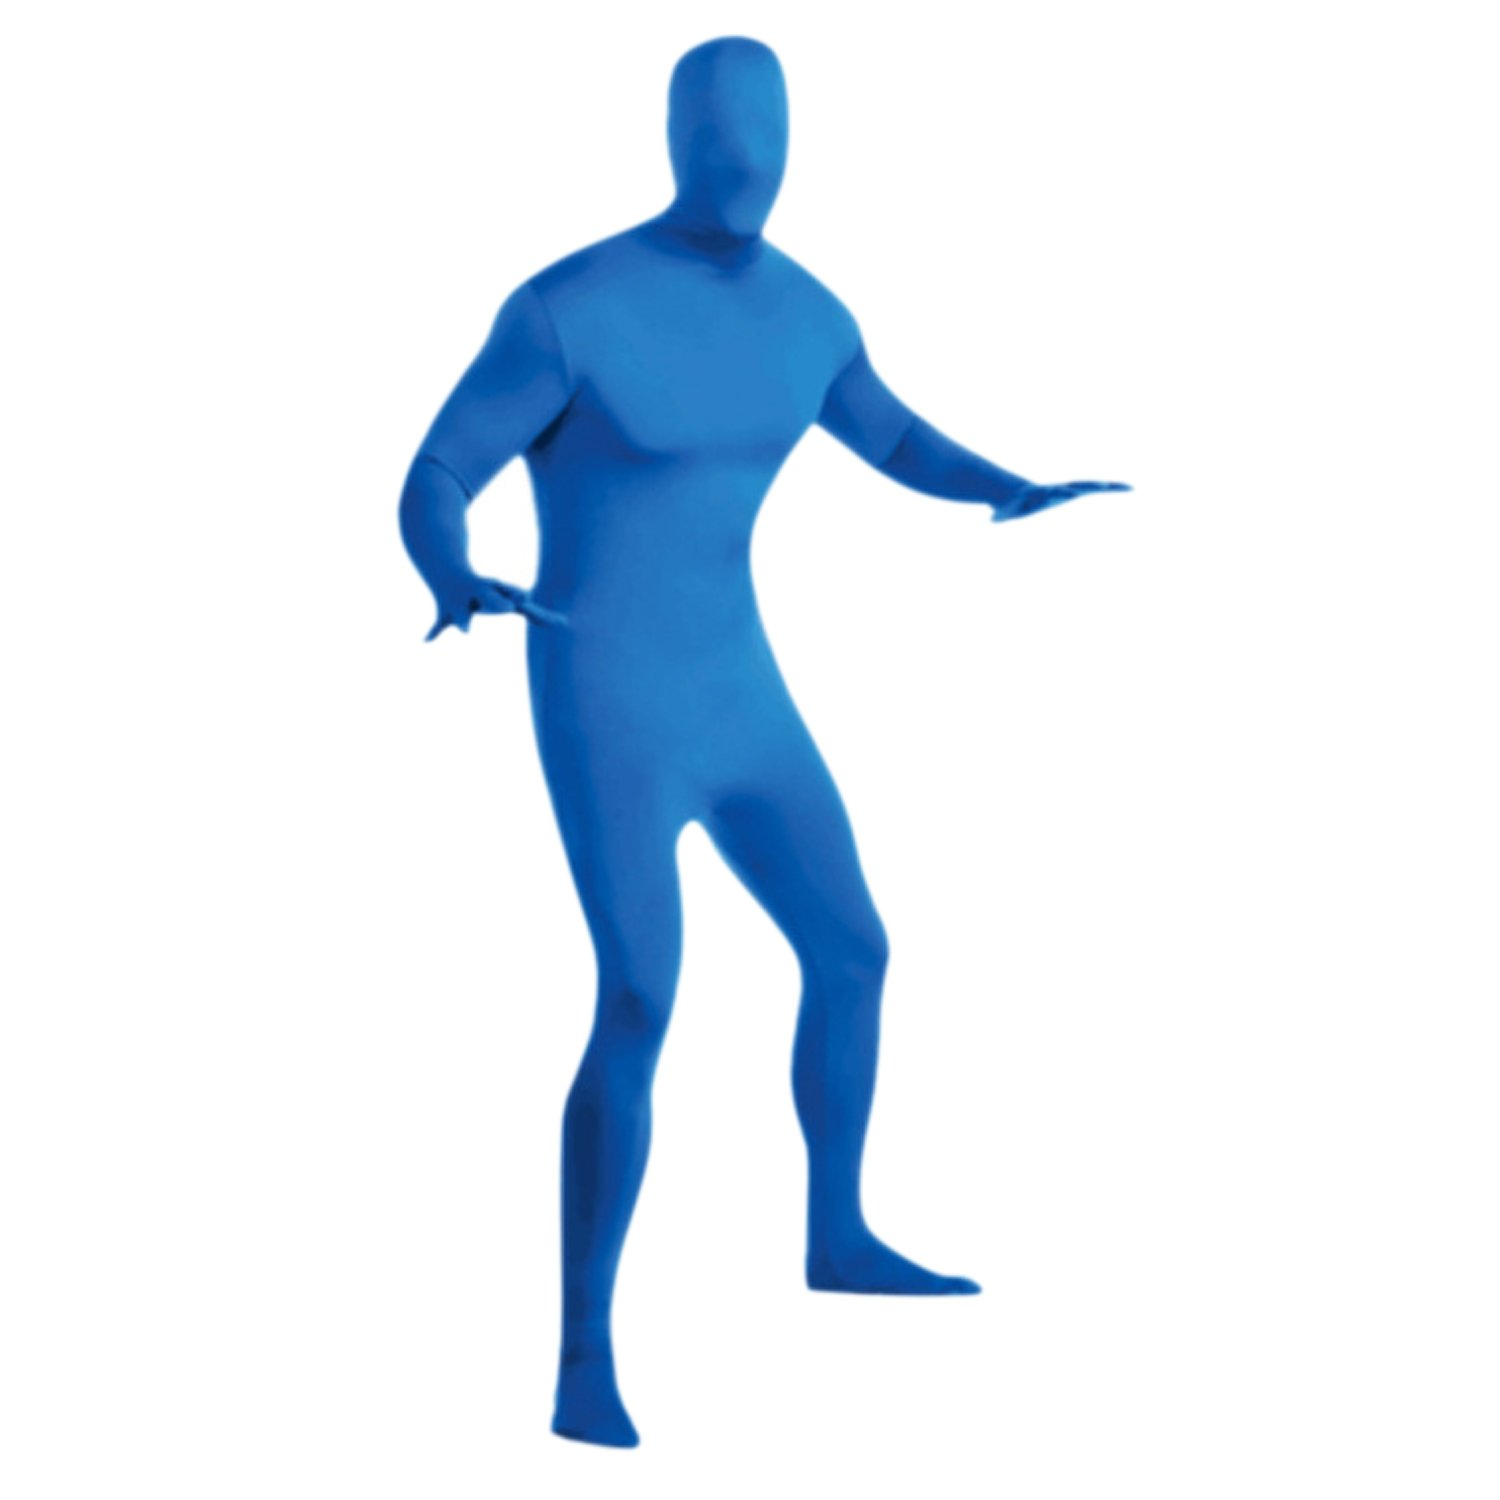 CHNS Halloween Full Body Lycra Spandex Costume Adult Second Skin Body Suit